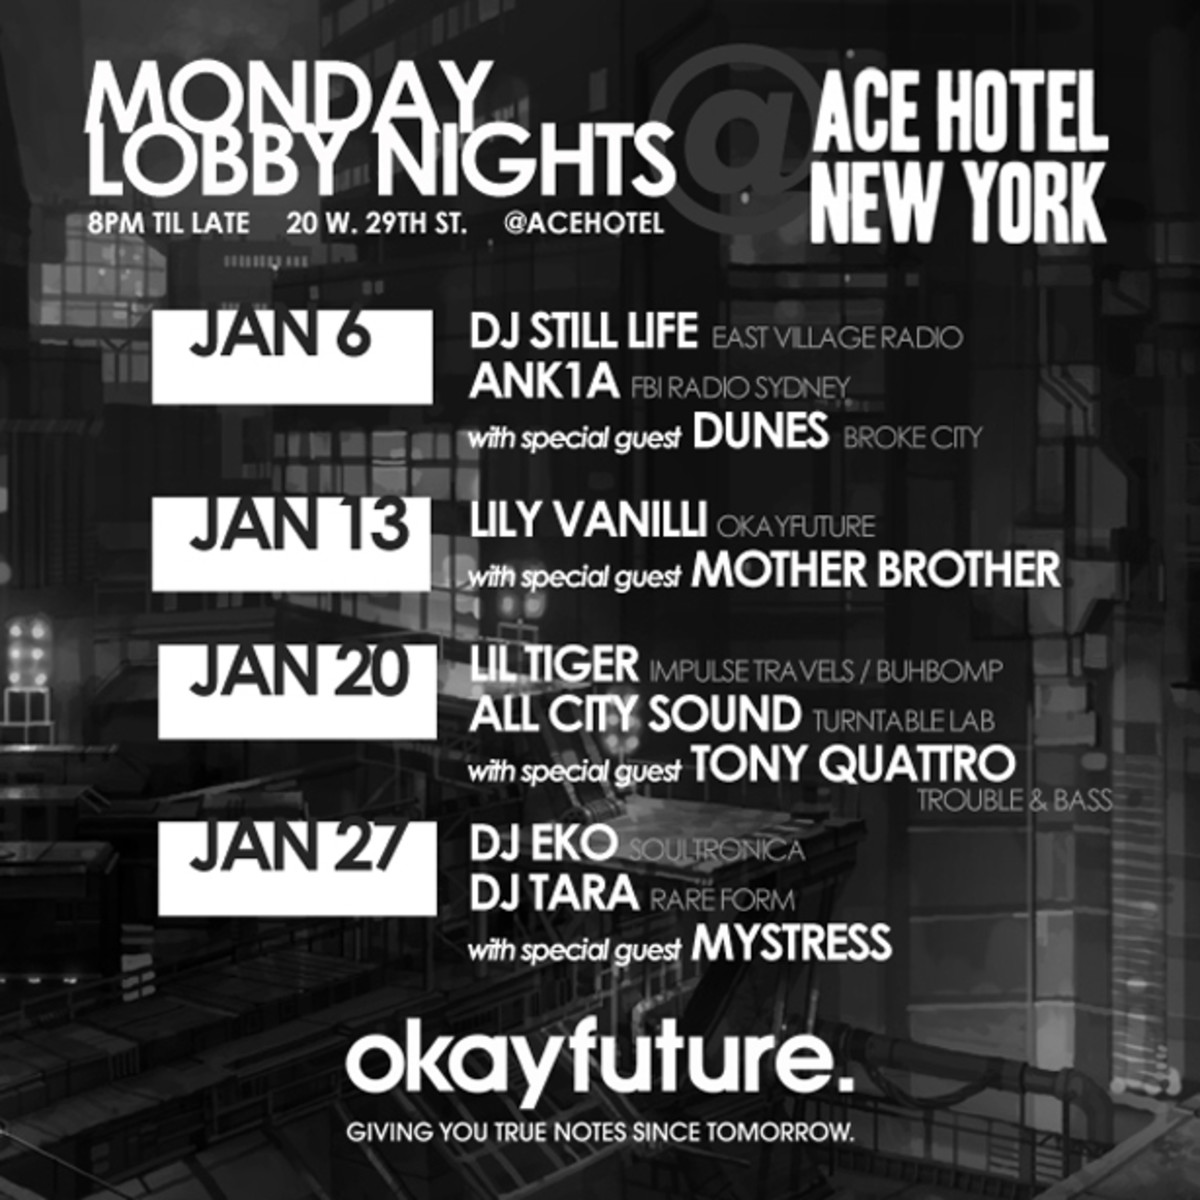 Okayfuture Takes Over The Ace Hotel New York Lobby This January - EDM News